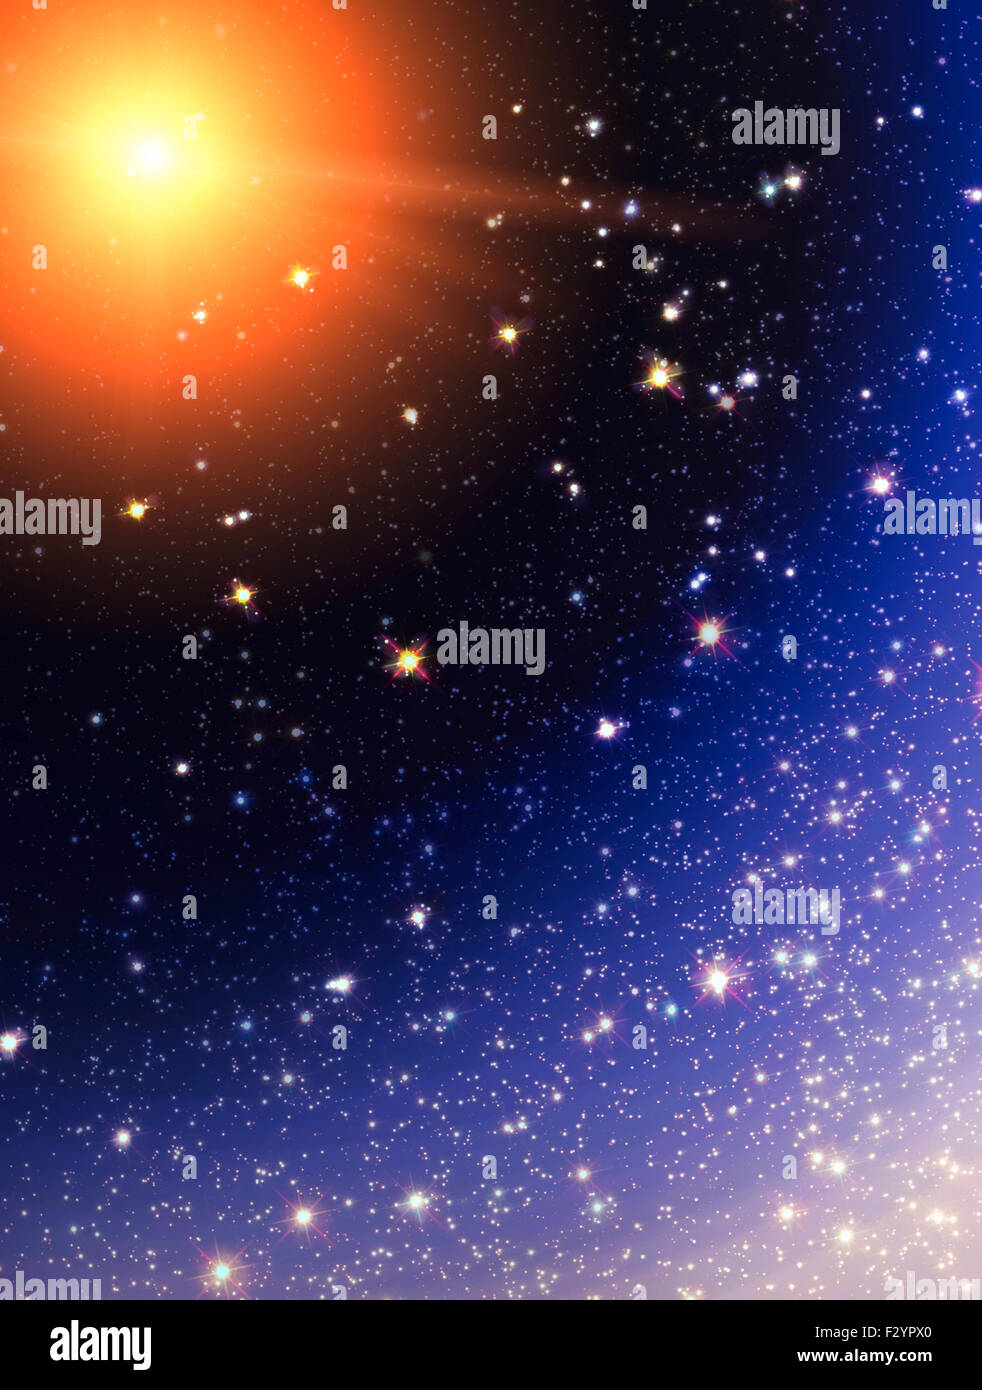 Stars background, space texture with many stars - Stock Image